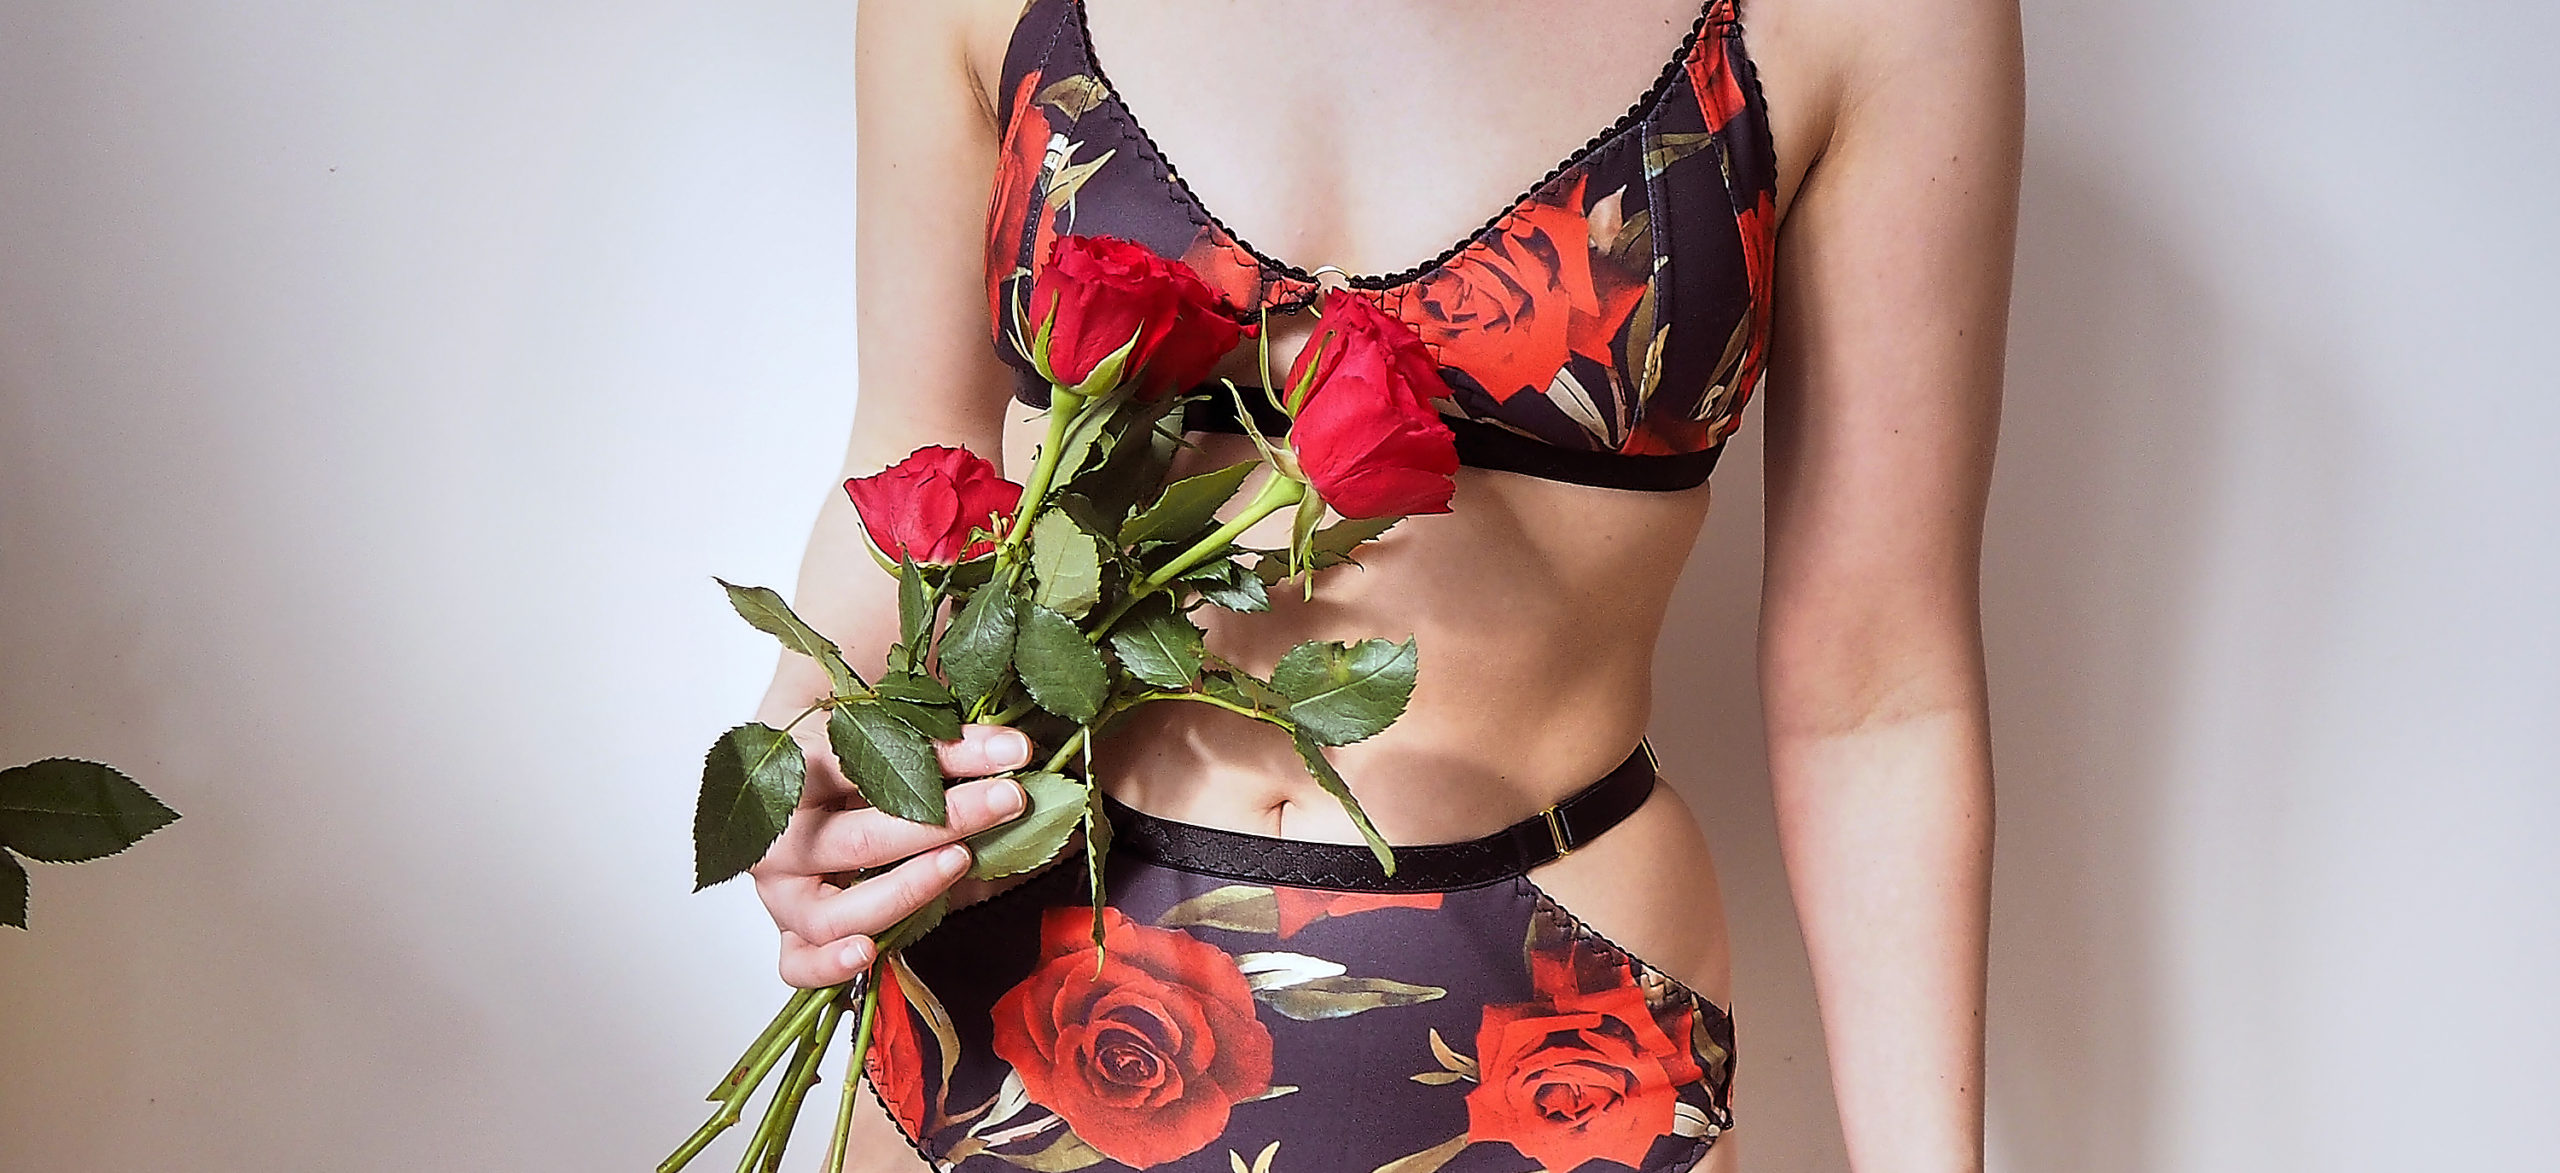 Colieco Lingerie – Ethical Fashion